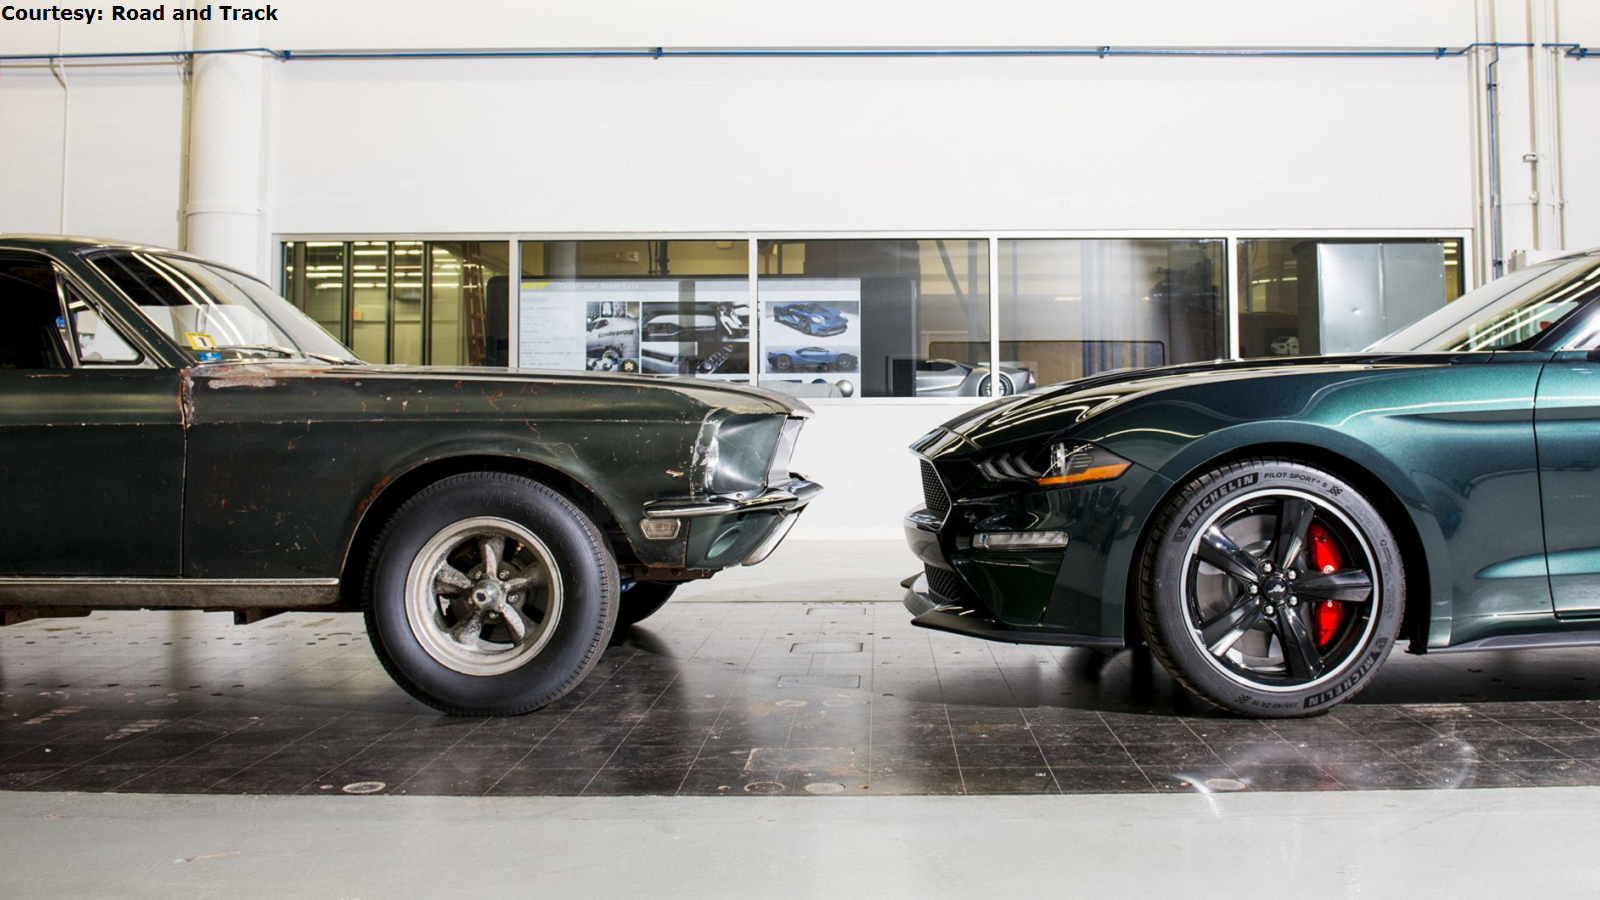 Remembering the Legendary Mustang Chase in Bullitt